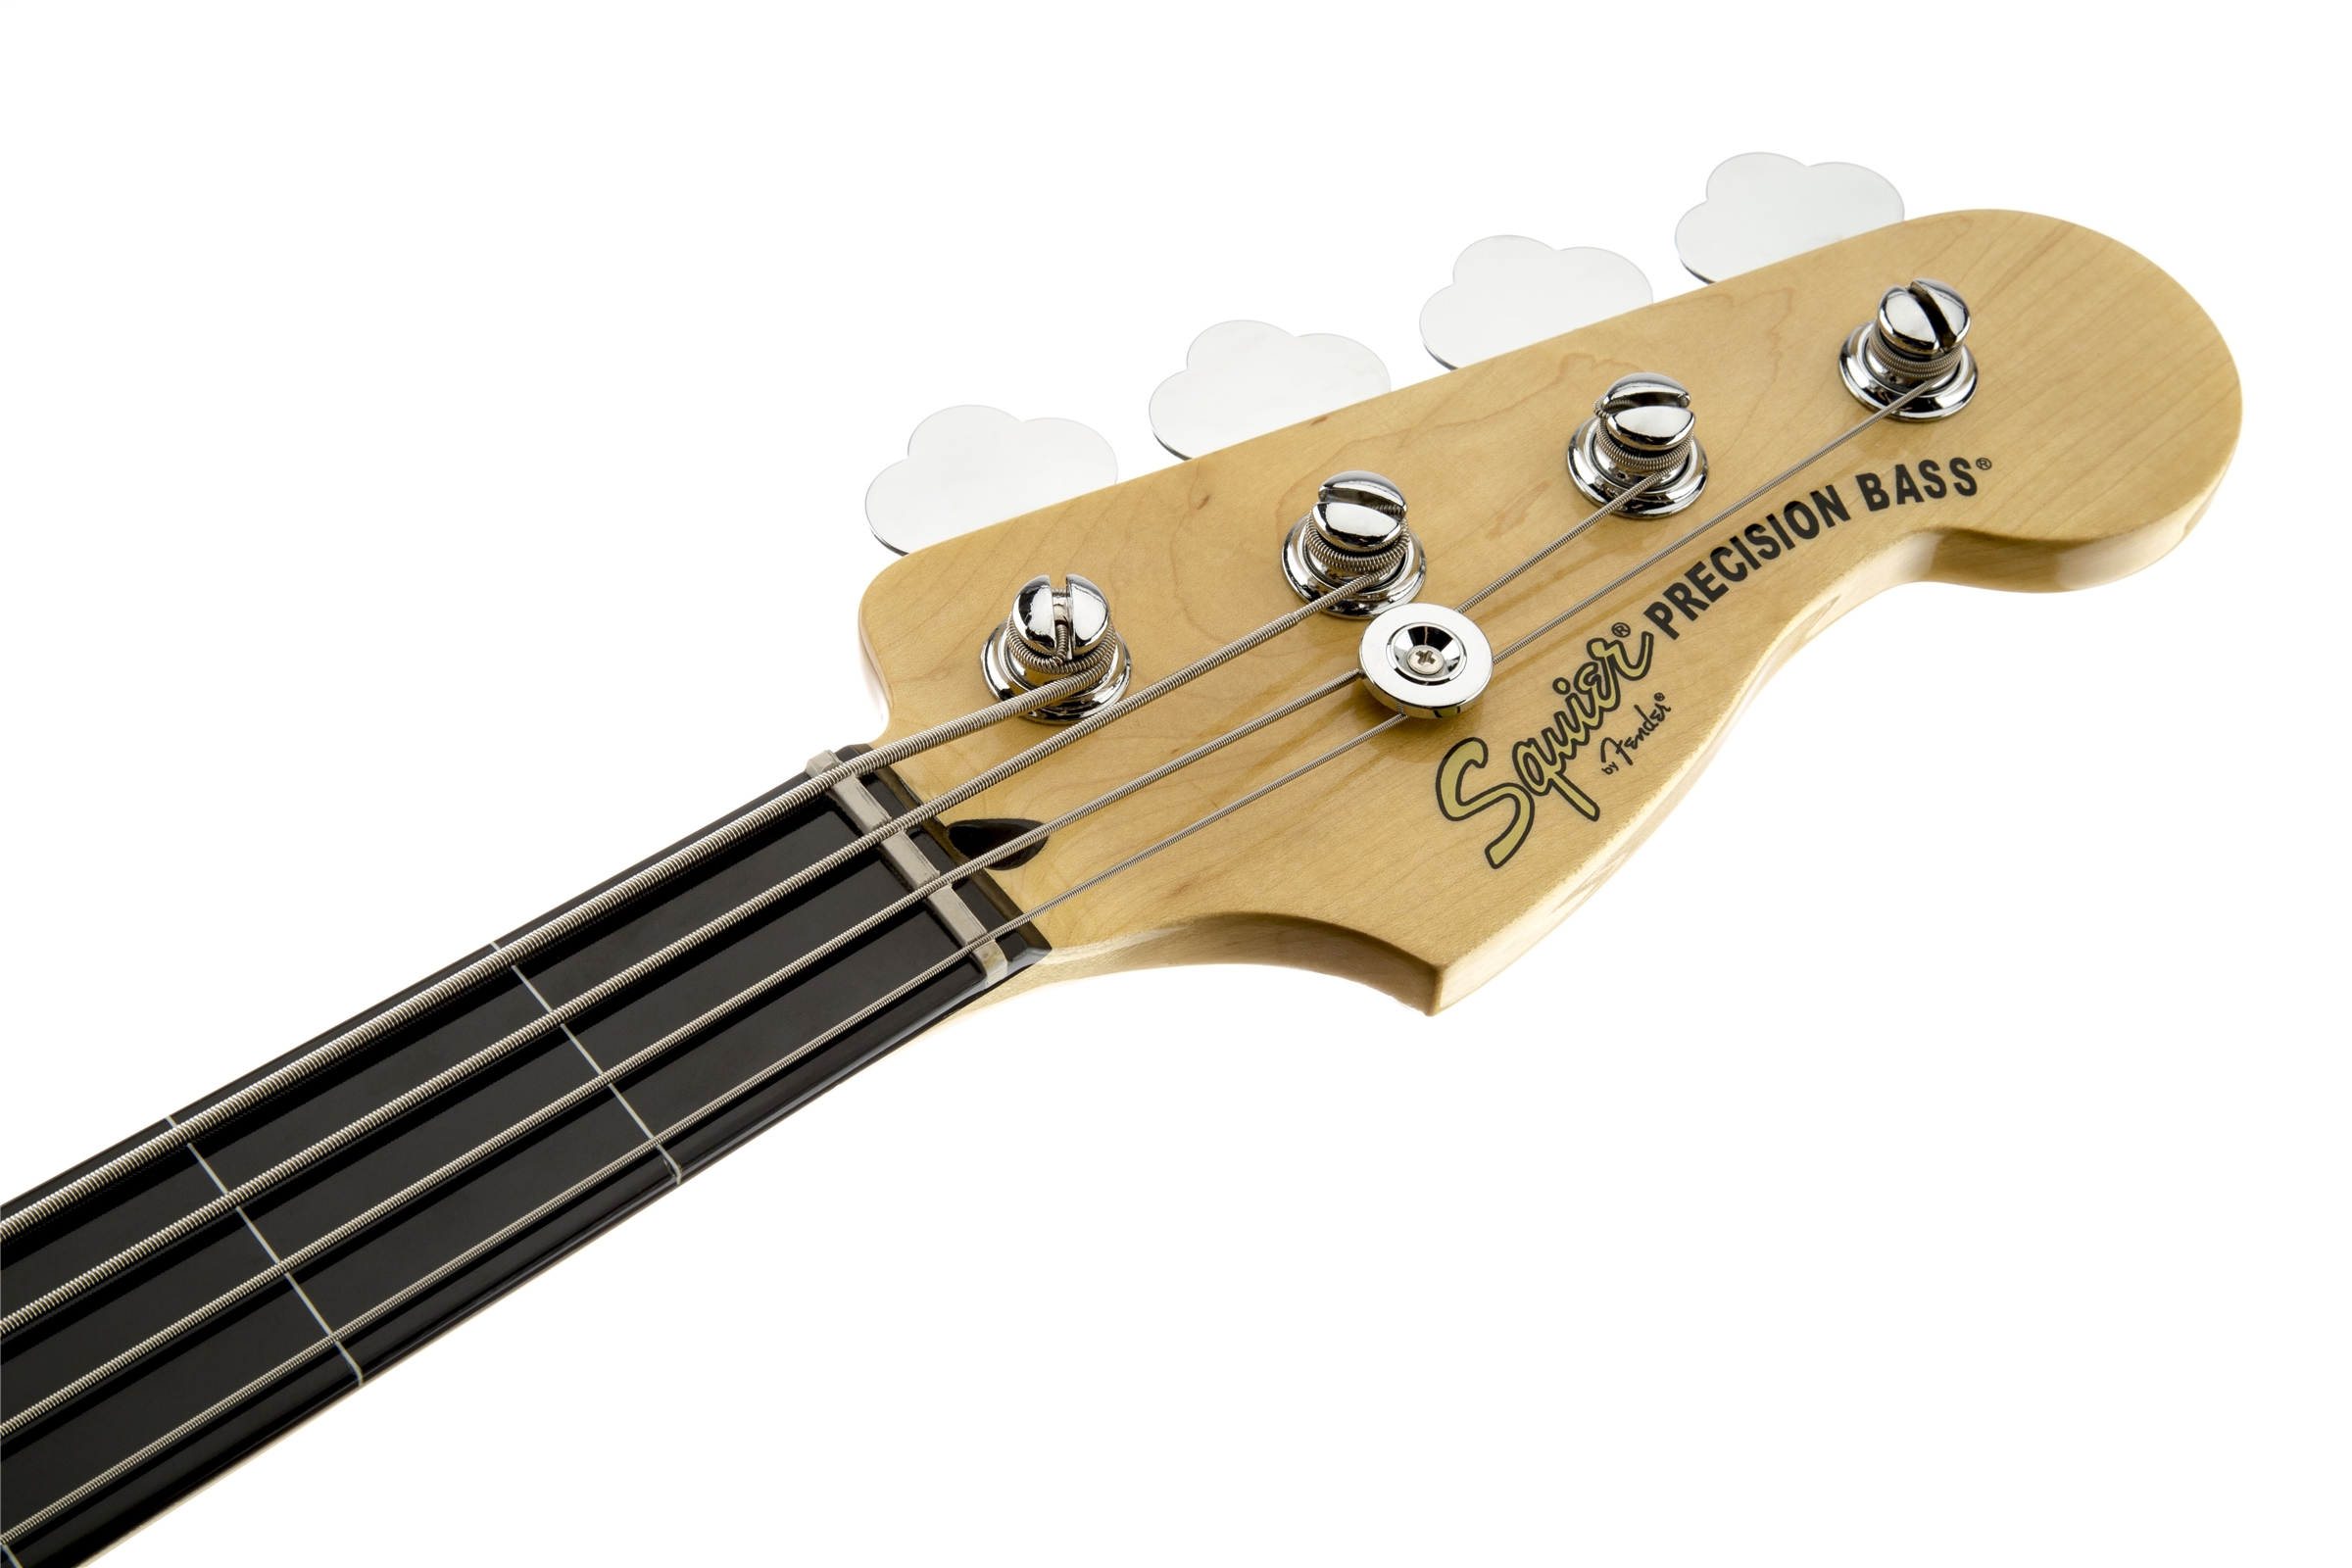 My eb bass squier vintage modified jazz bass - Vintage Modified Precision Bass Fretless